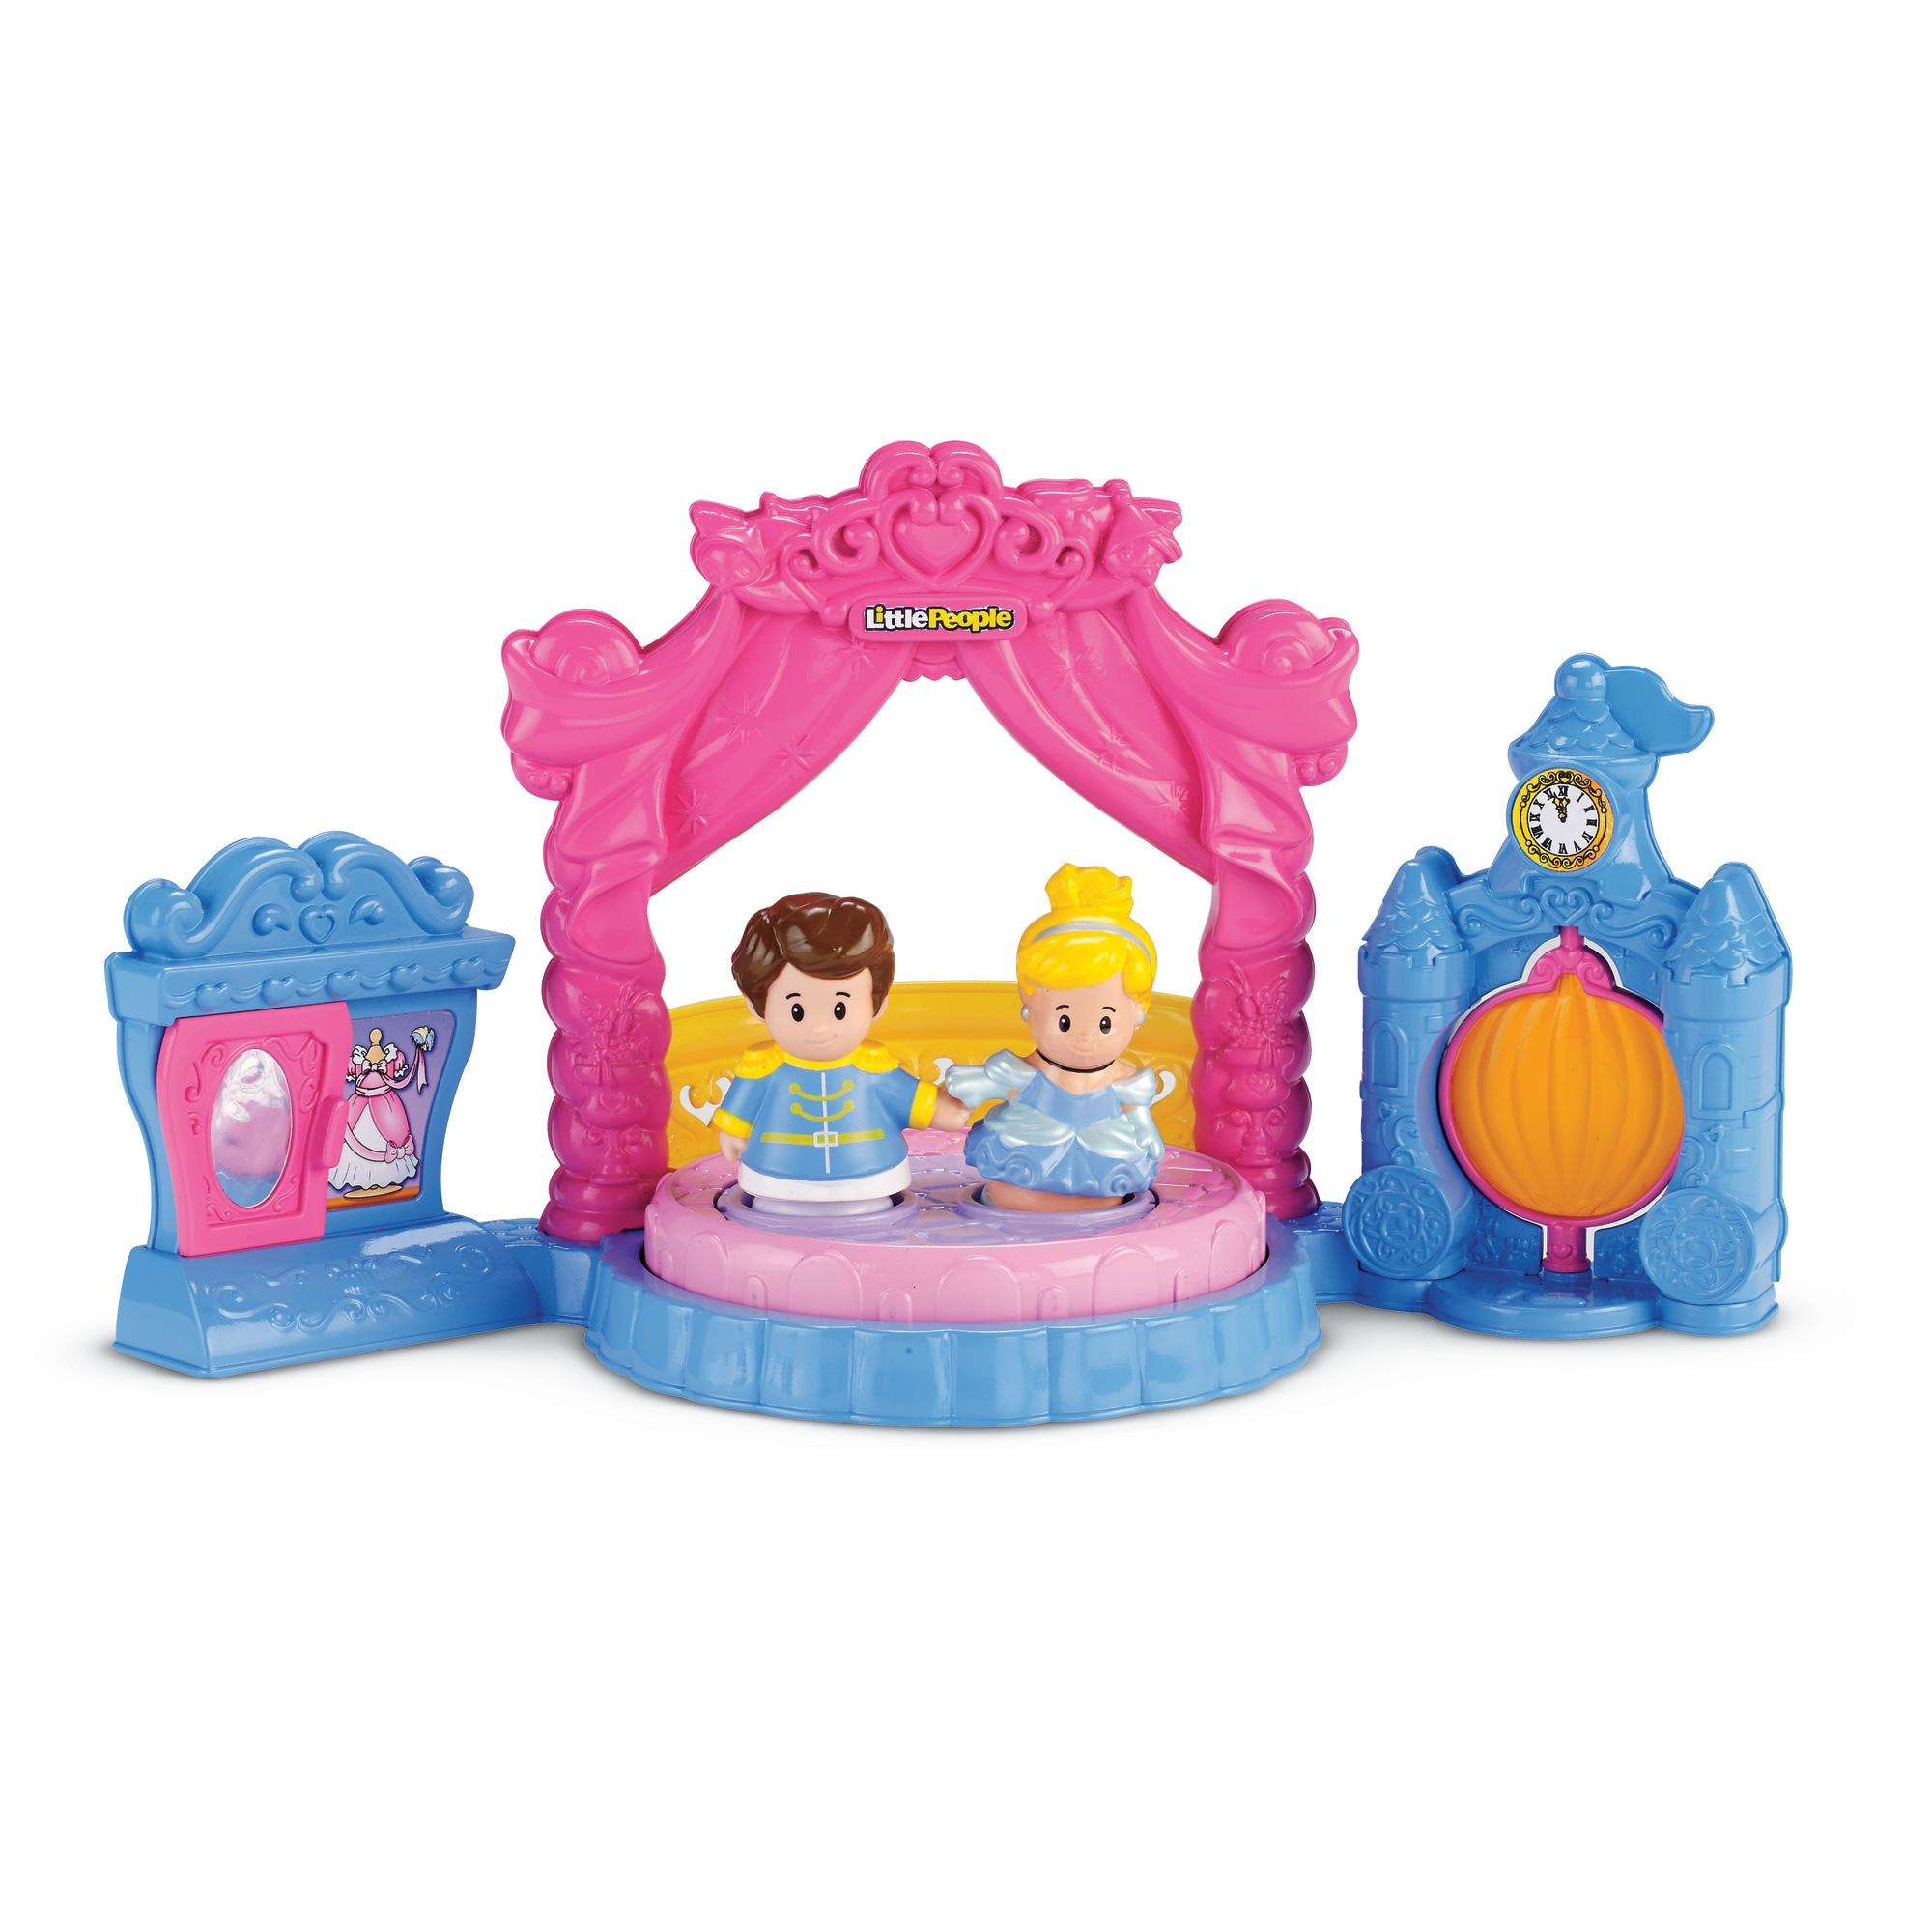 Disney Princess Cinderella's Ball by Little People by Little People